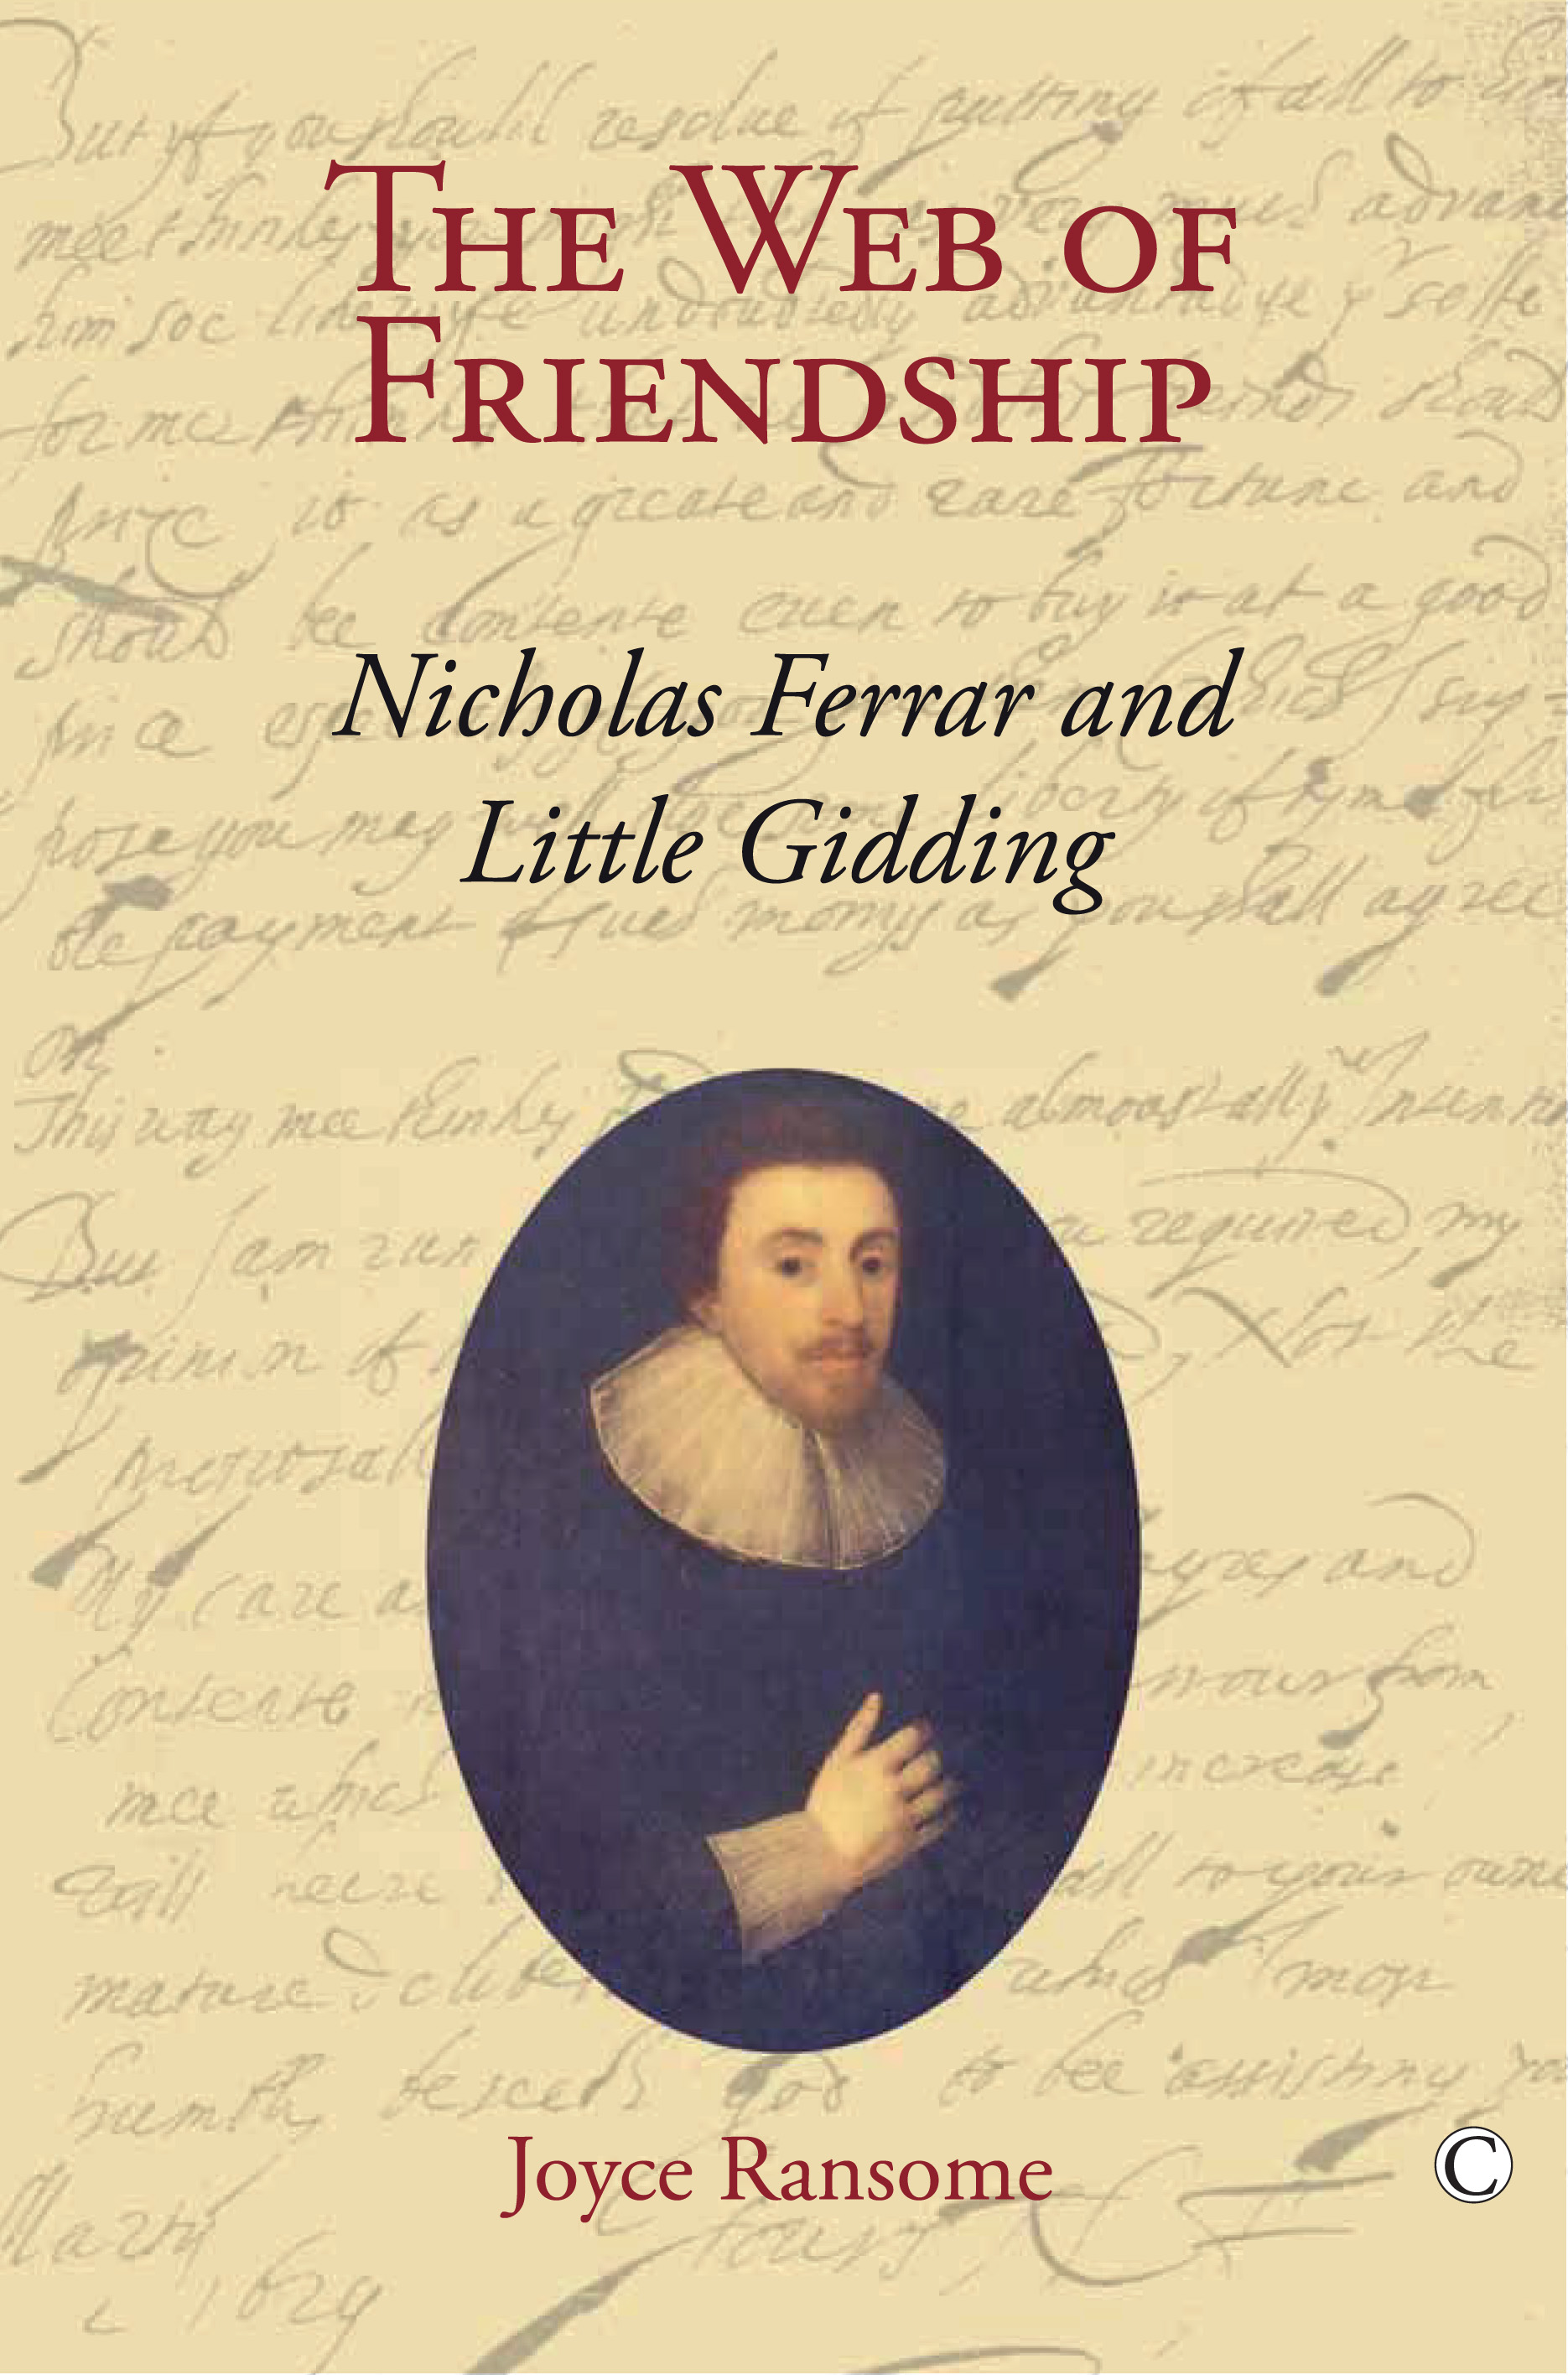 the interesting life of nicholas ferrar Little gidding was an anglican community founded by nicholas ferrar and his extended family in 1626 the ferrars had been investors in the virginia company, and with the company's collapse in 1624 and the second pandemic of the plague wreaking havoc in london, the family fled to little gidding  the life and times of nicholas.